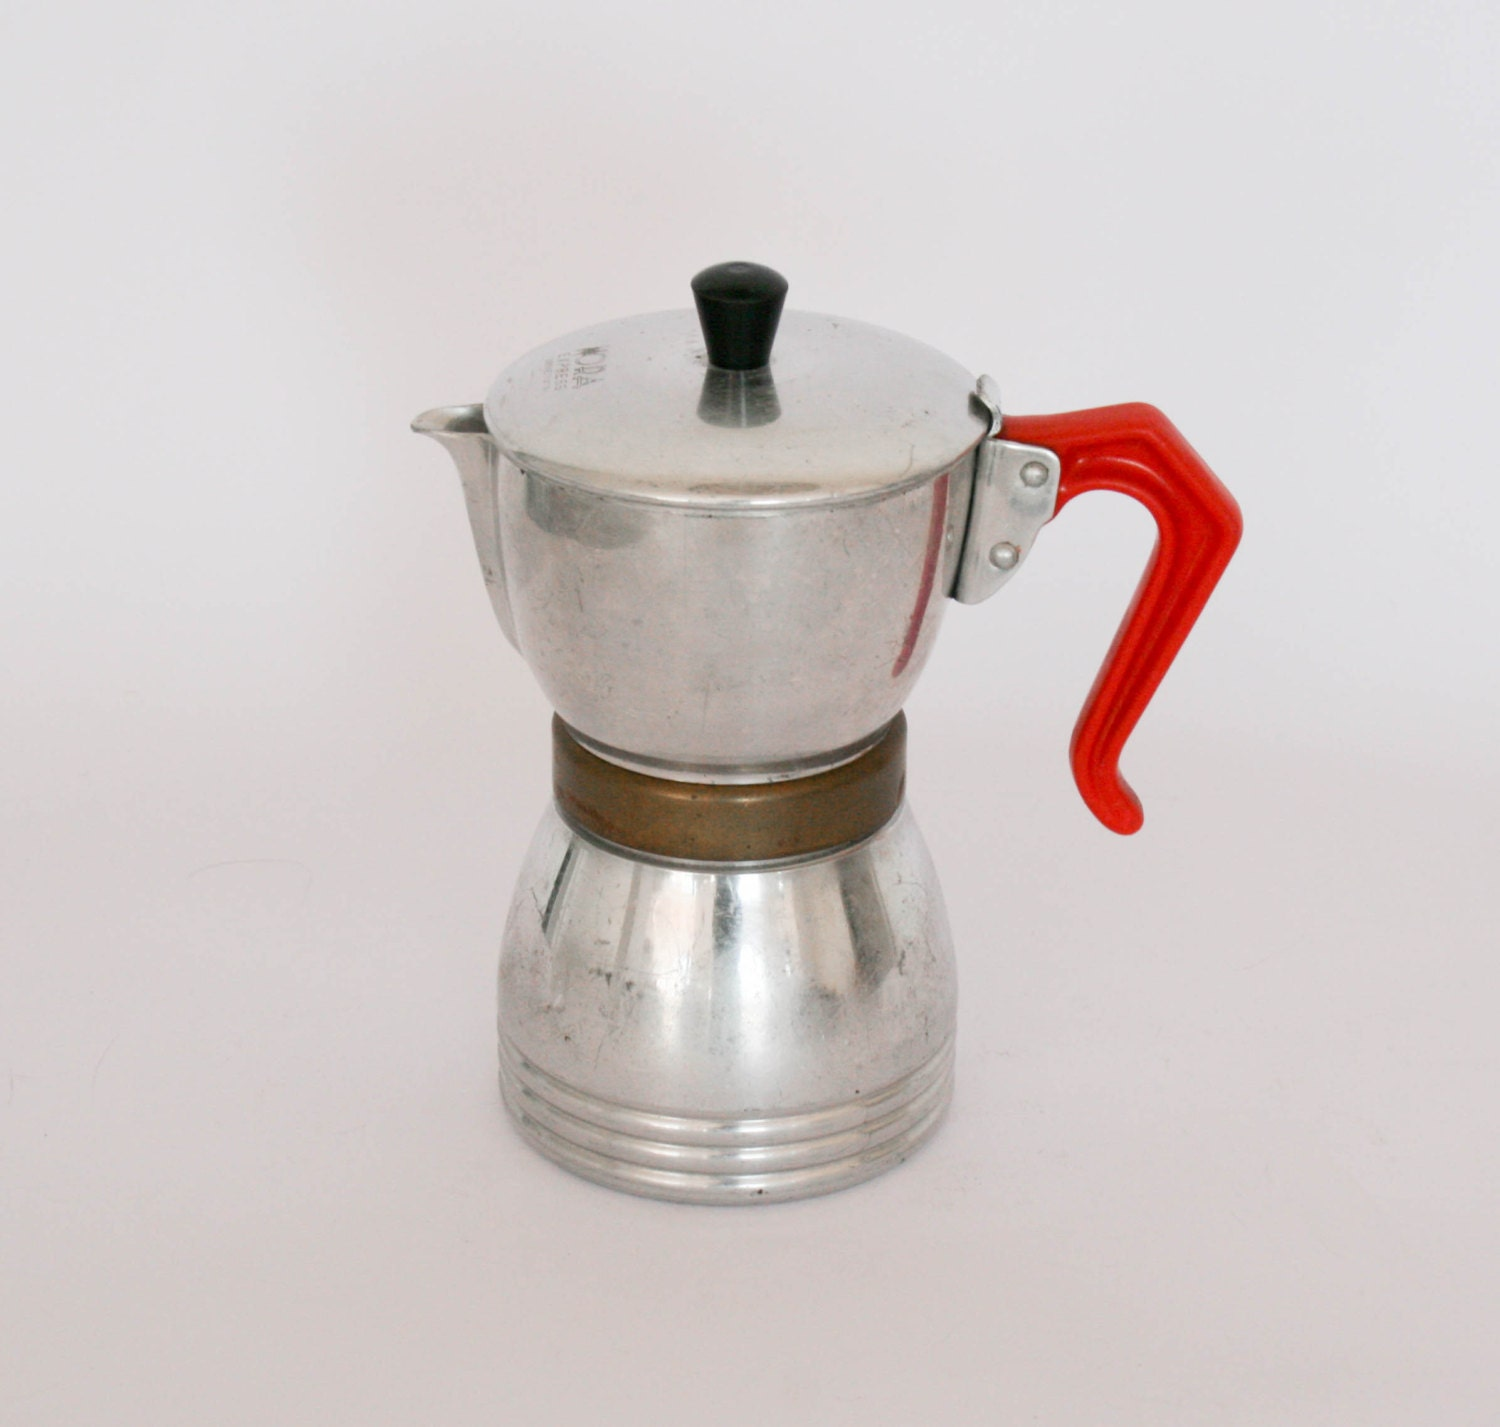 Antique Italian Coffee Maker : Nora Express Vintage Italian Coffee Maker / Coffee Pot